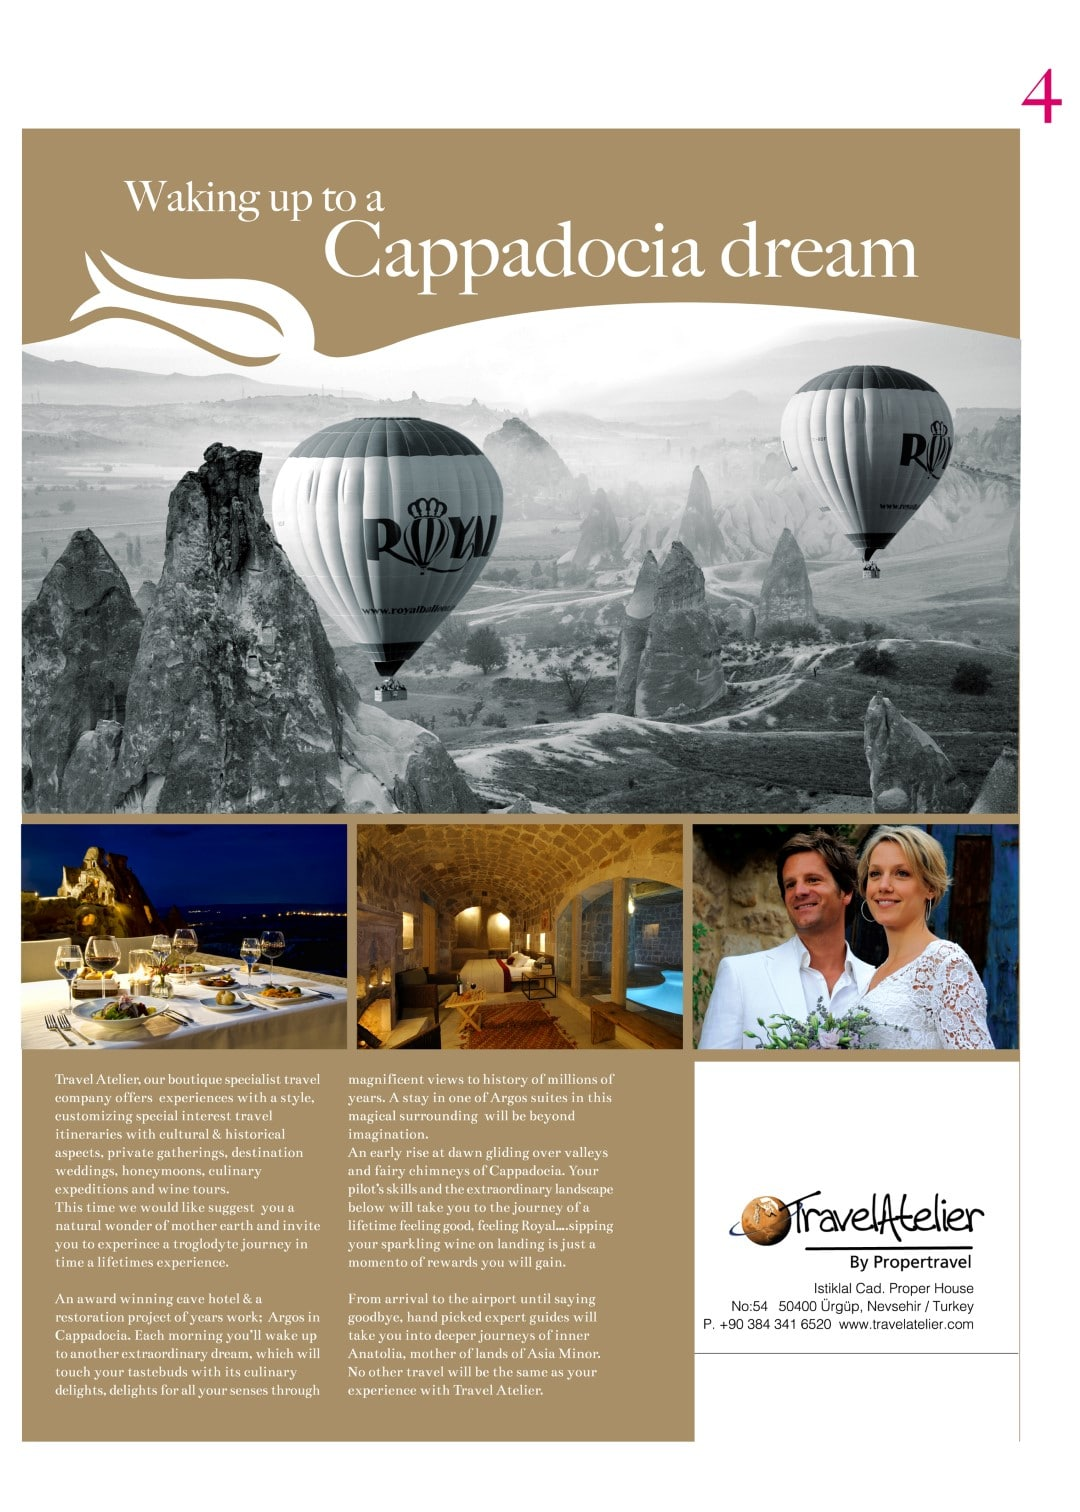 Waking up to a Cappadocia Dream